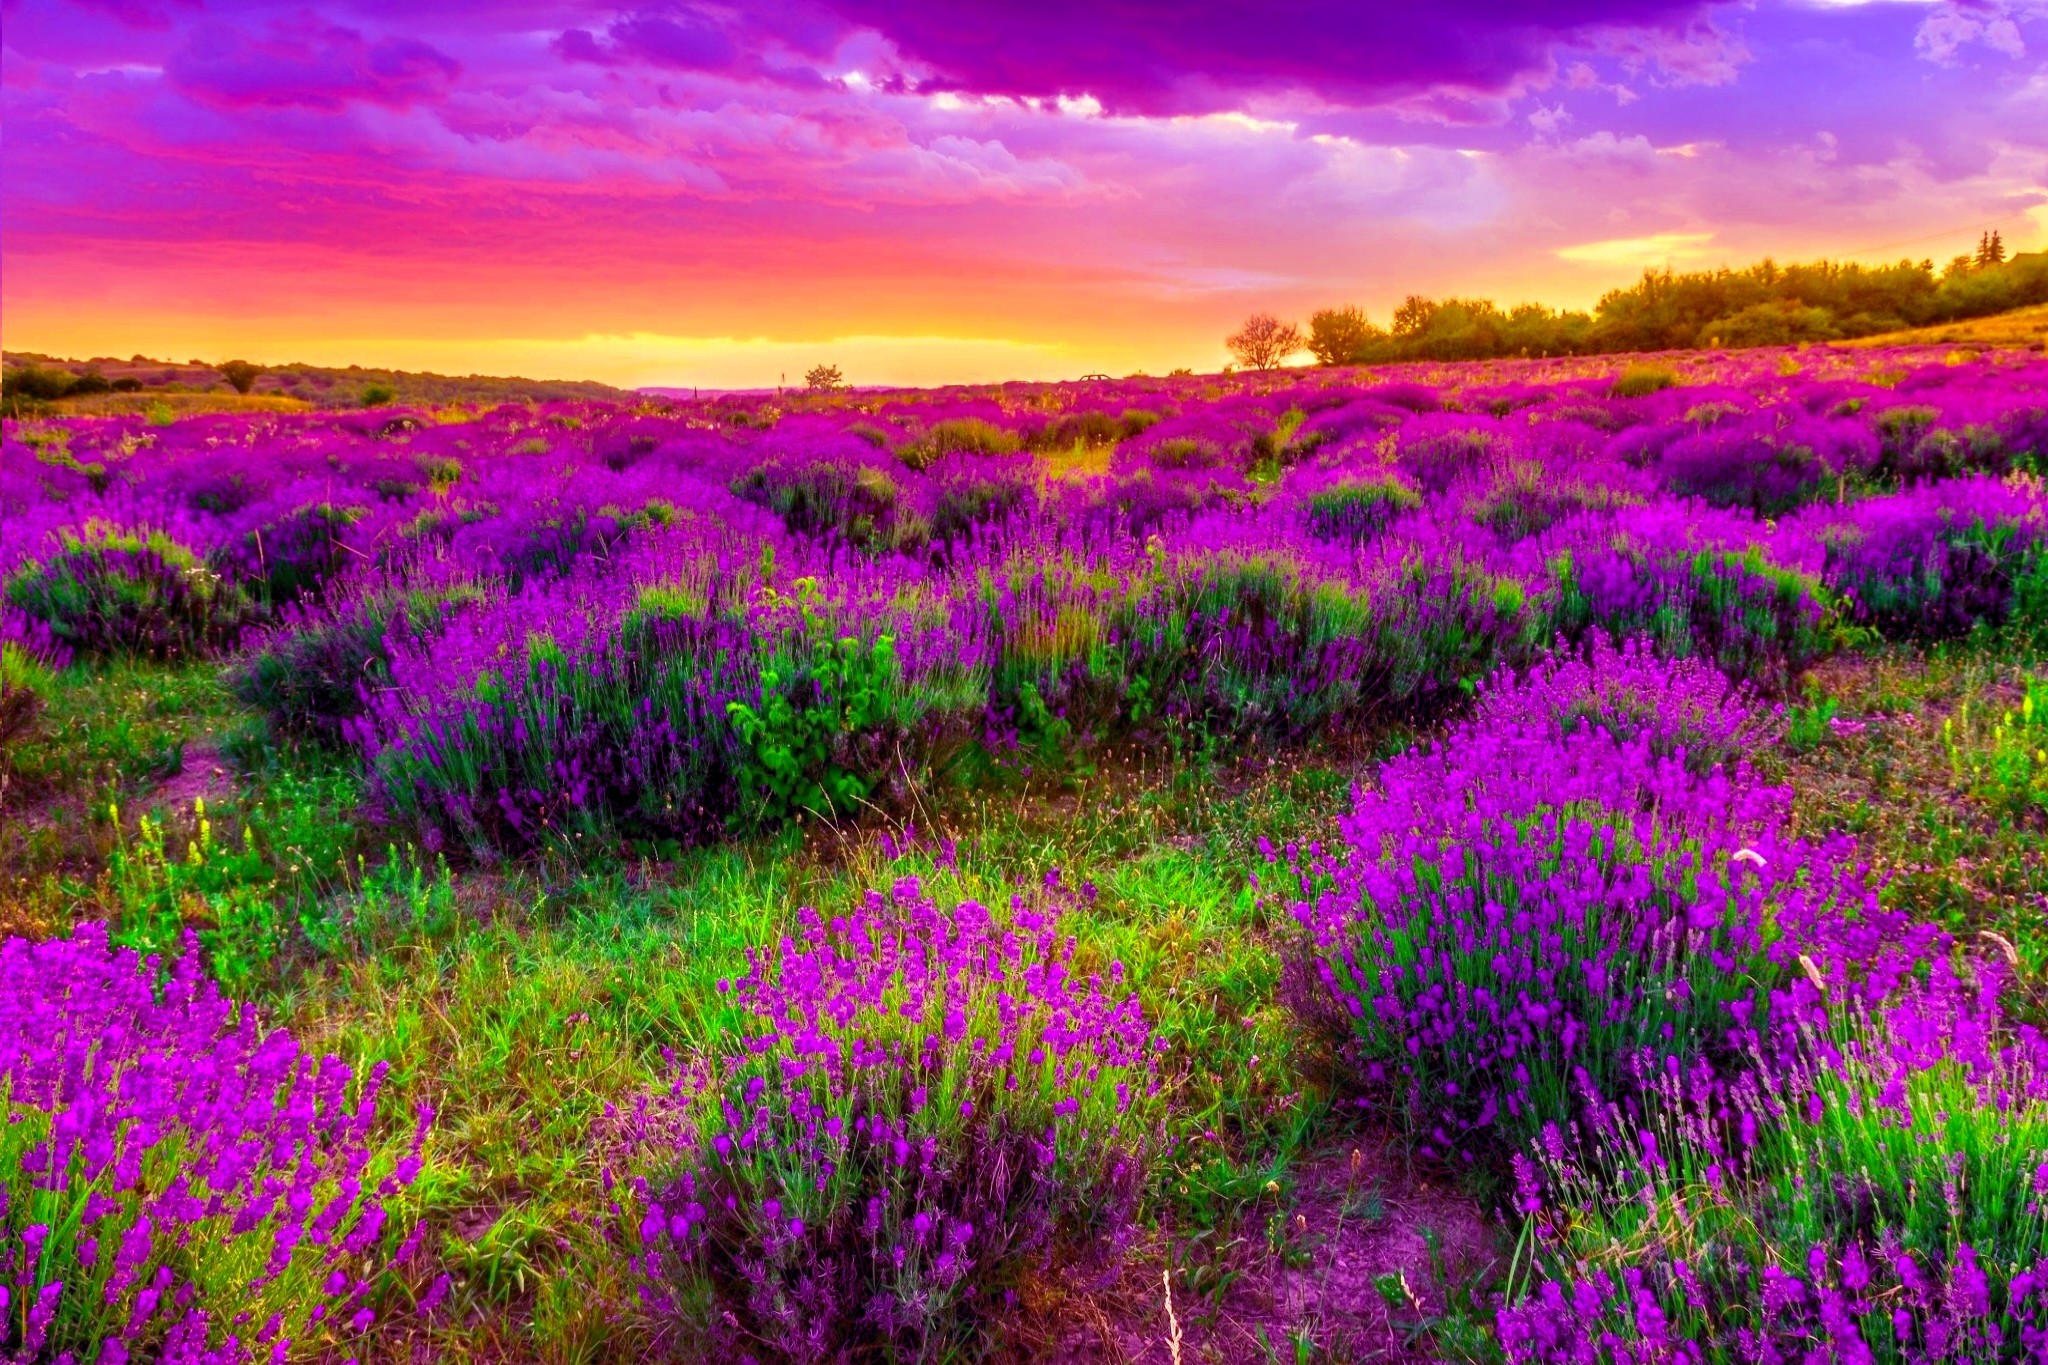 Pretty Spring Backgrounds and Wallpapers 60 images 2048x1365